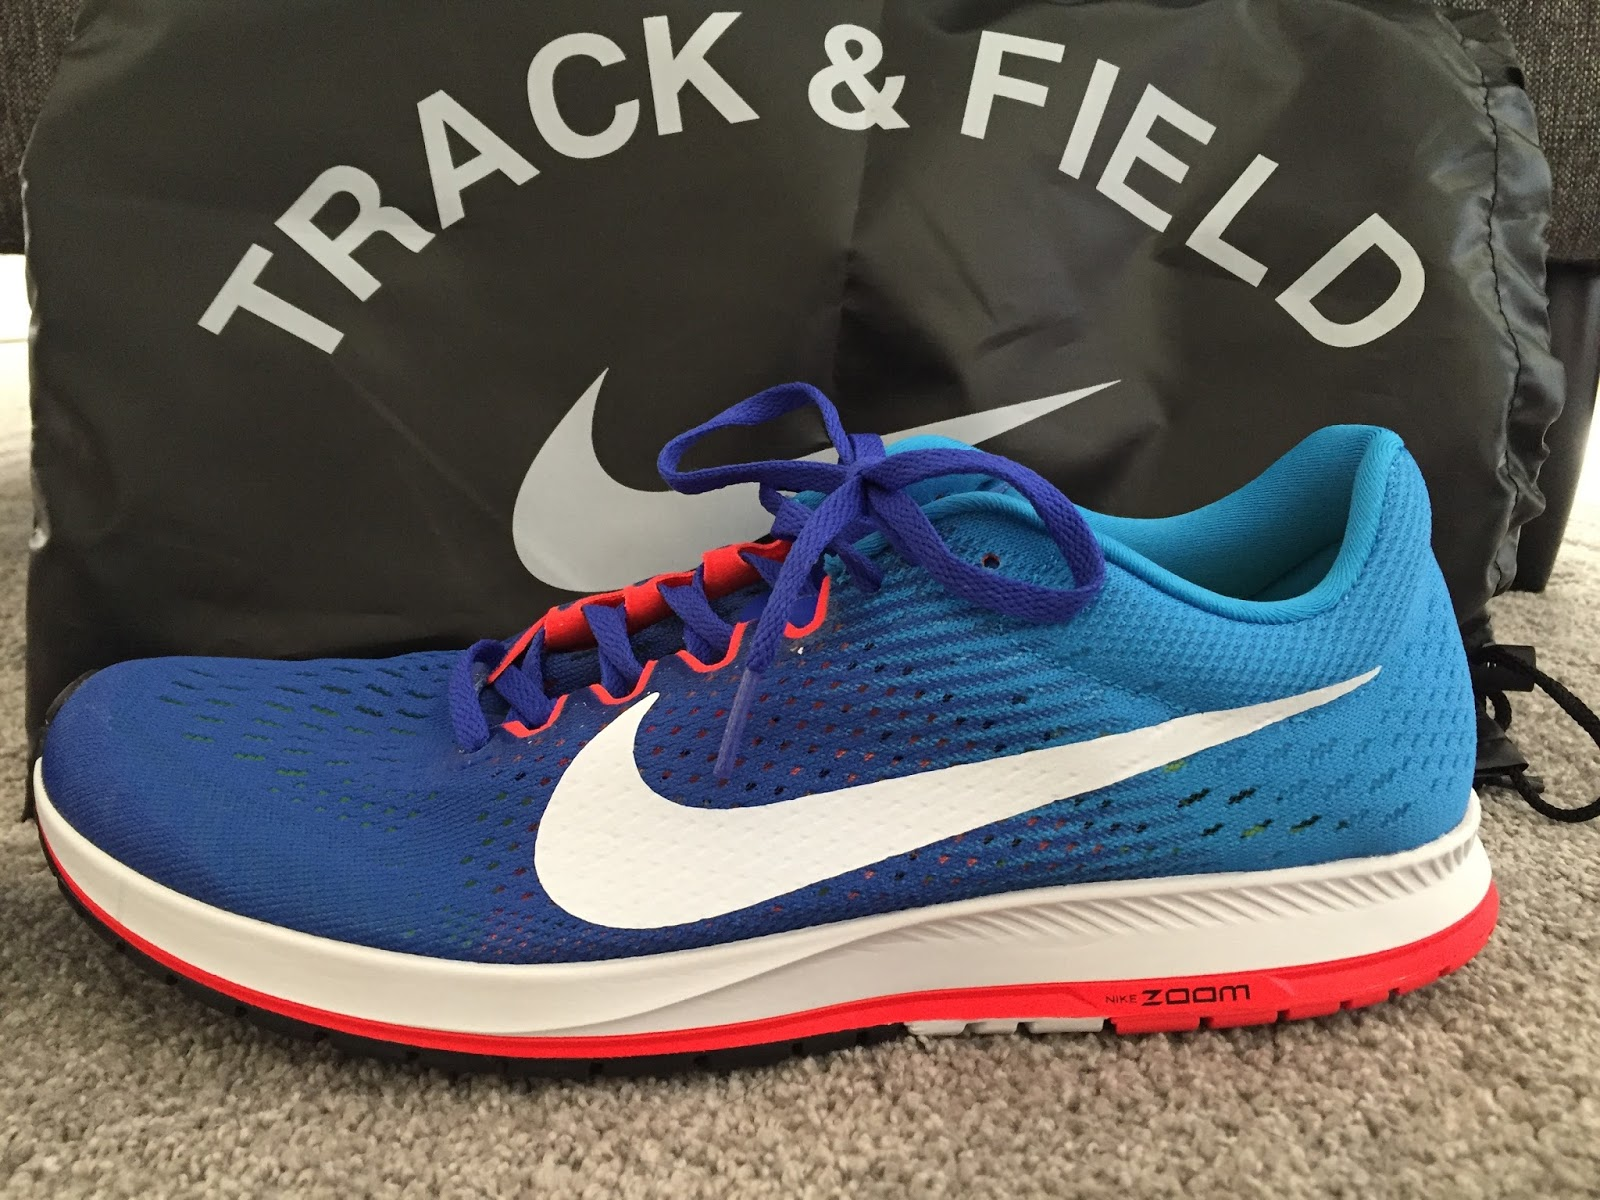 online store f8ee0 788b1 Nike Zoom Streak 6 Full Review-Swoosh, There It Is!. Nearly Perfect Race  Flat